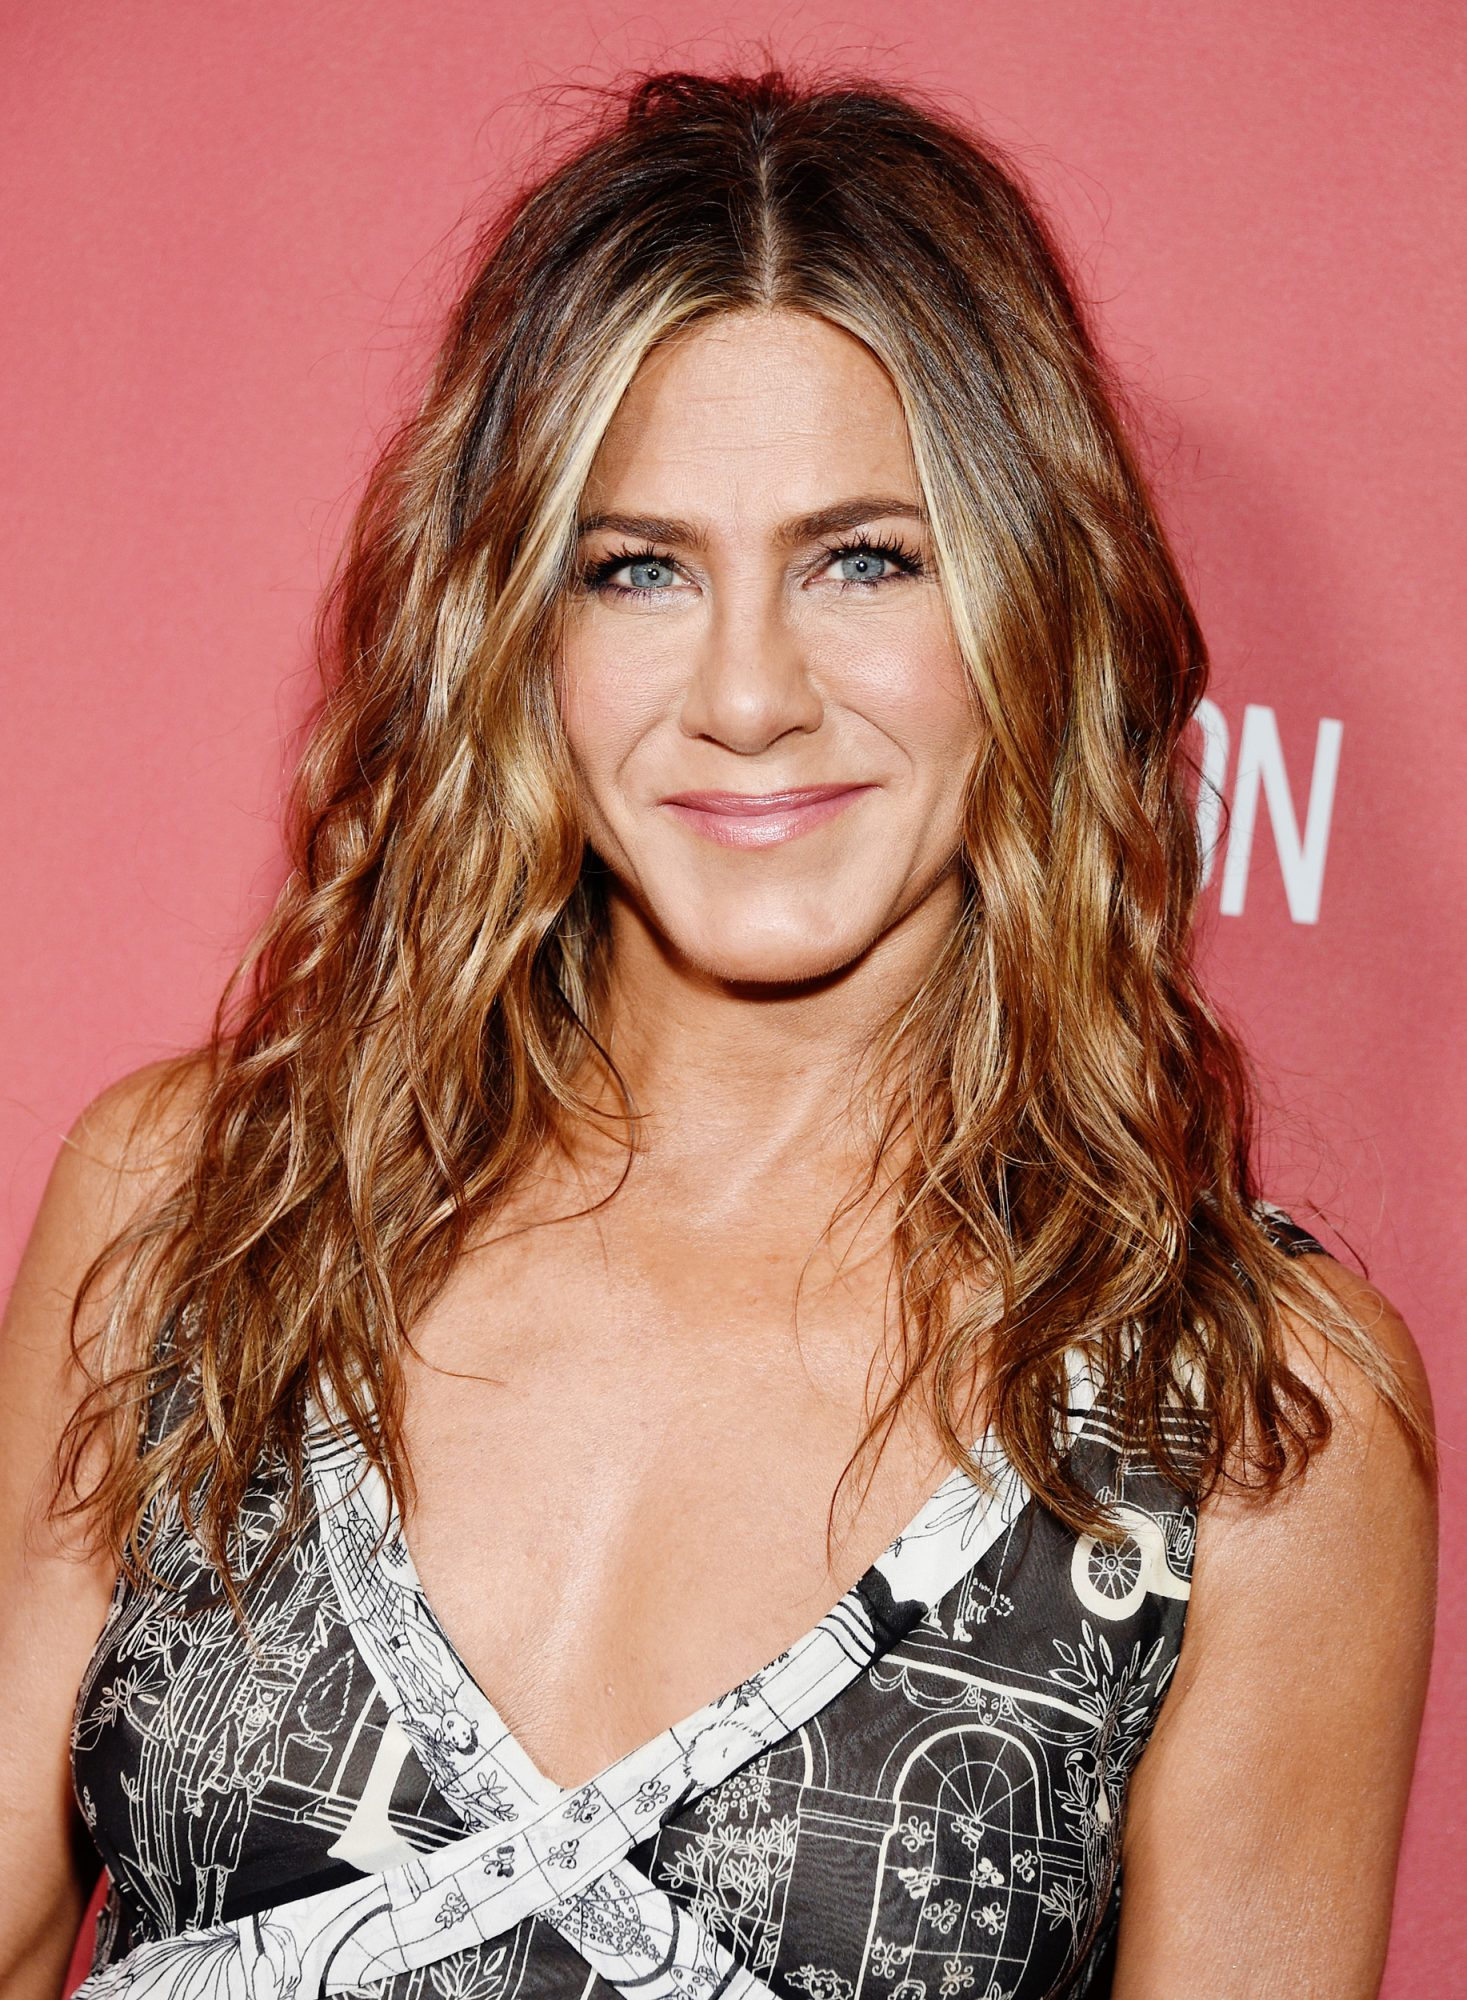 Jennifer Aniston's go-to brands are on sale at Nordstrom